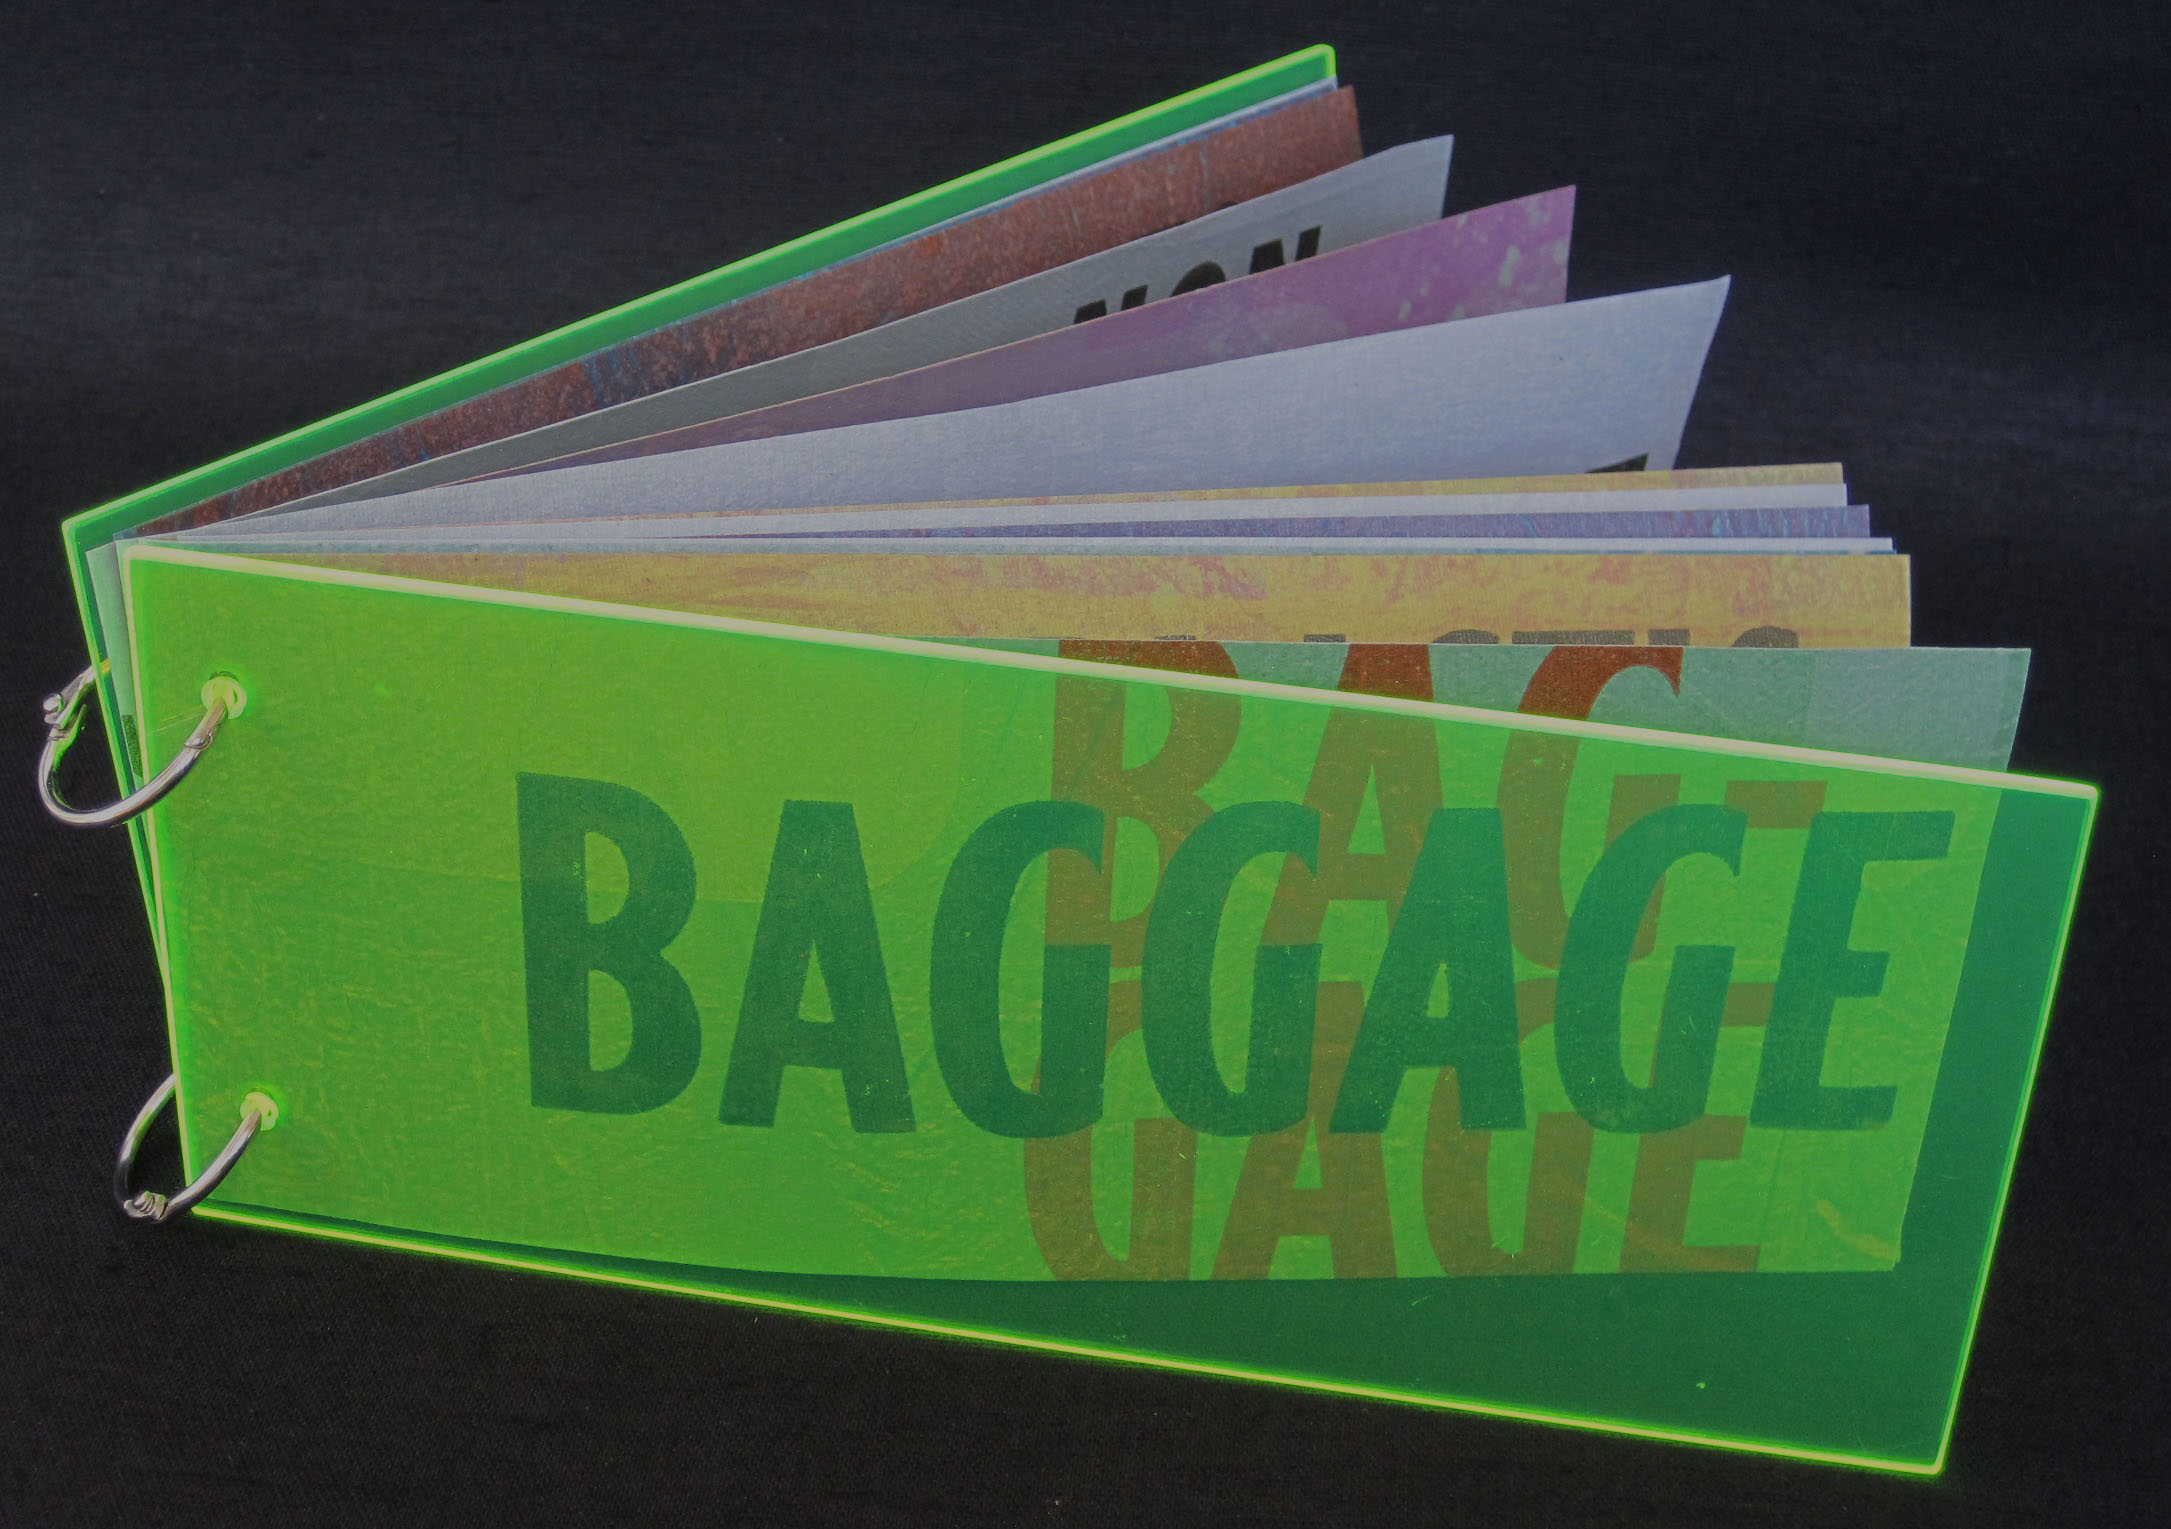 Bagage: plastic book edition